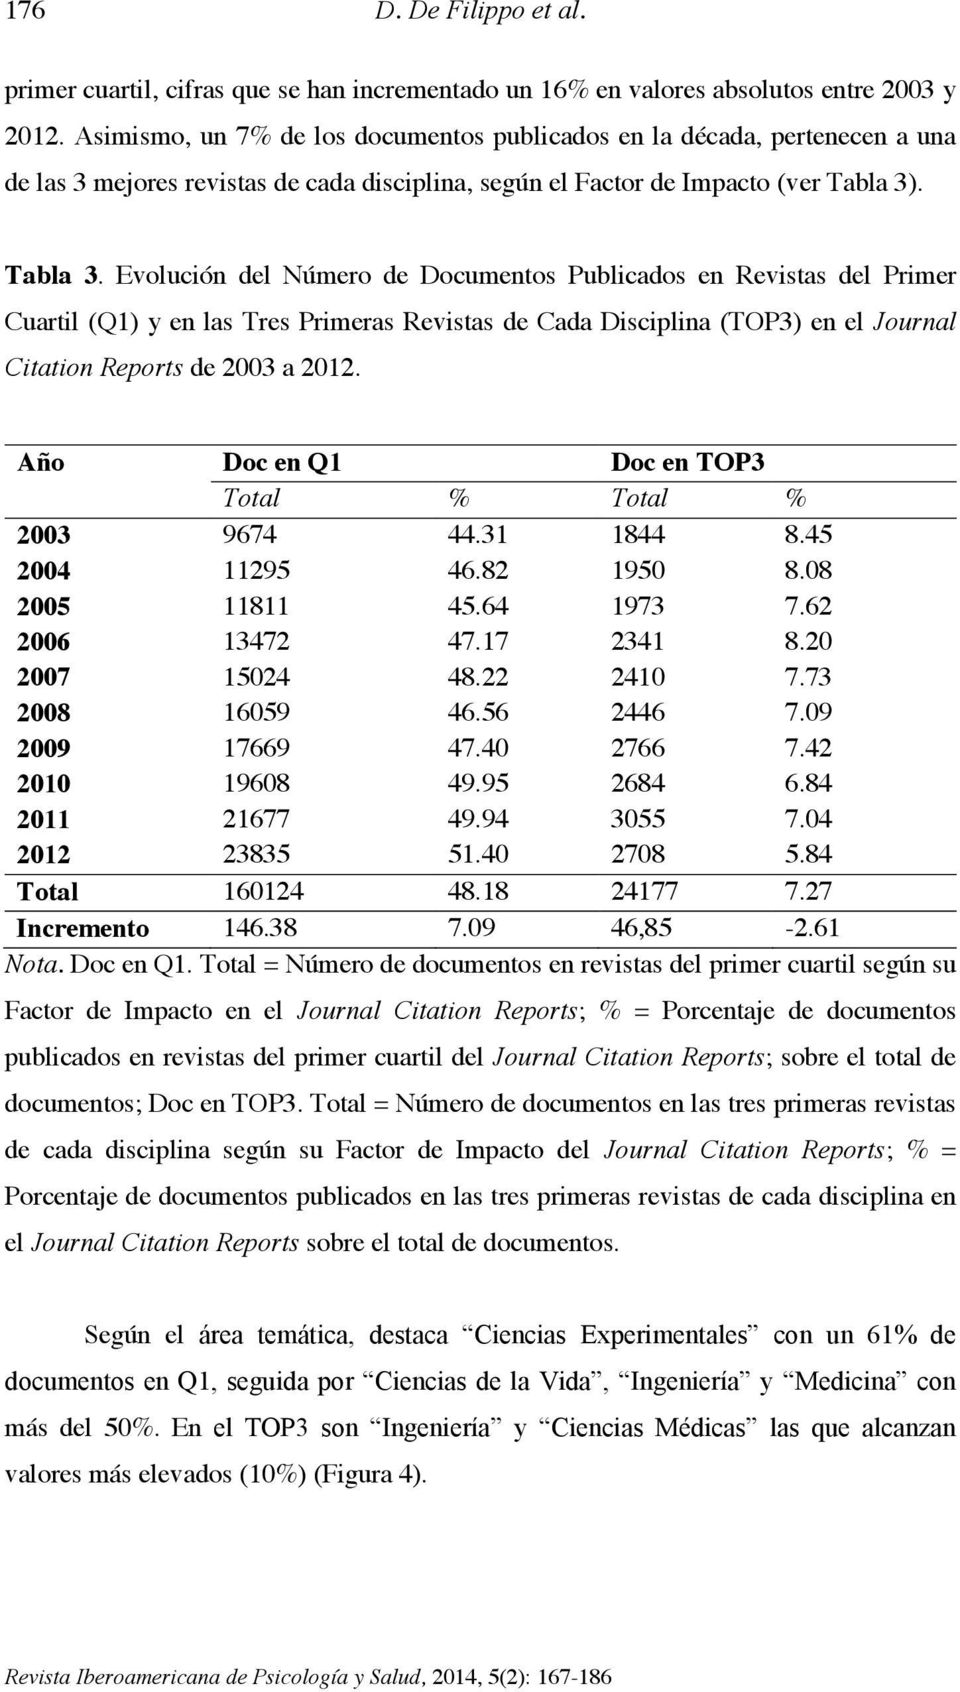 . Tabla 3. Evolución del Número de Documentos Publicados en Revistas del Primer Cuartil (Q1) y en las Tres Primeras Revistas de Cada Disciplina (TOP3) en el Journal Citation Reports de 2003 a 2012.